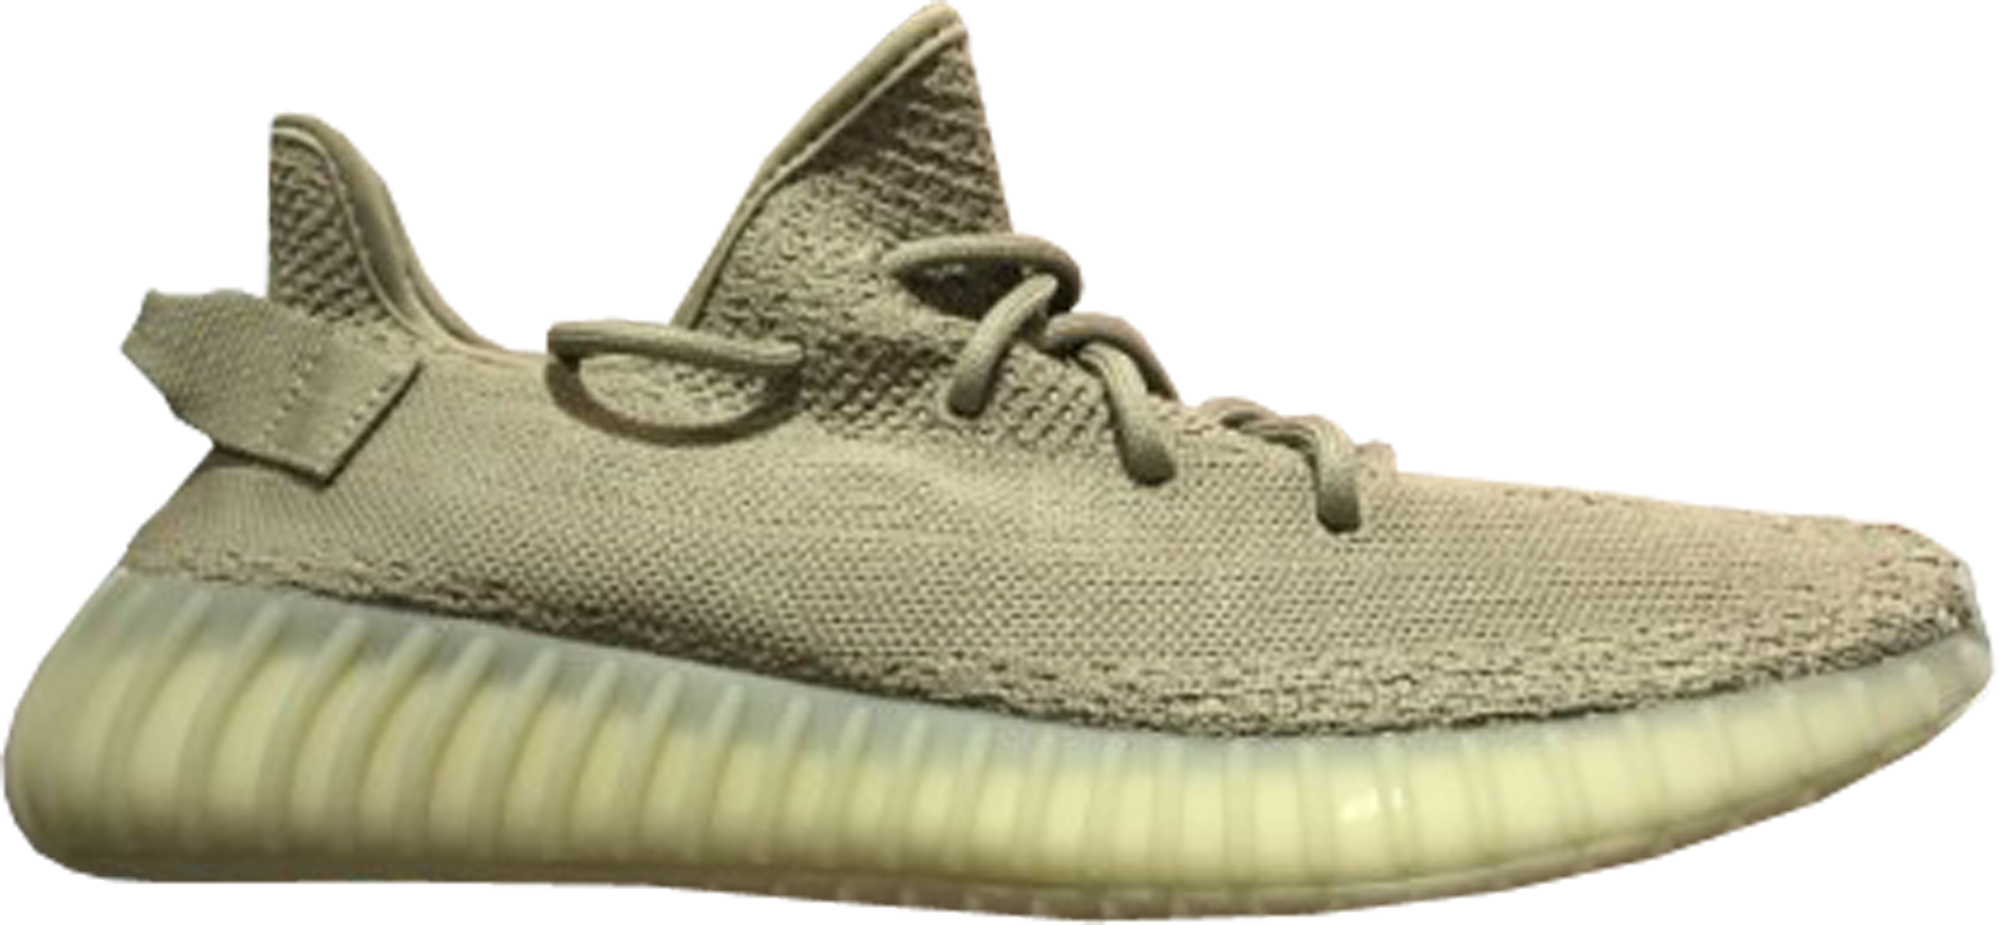 adidas Yeezy Boost 350 V2 Dark Green